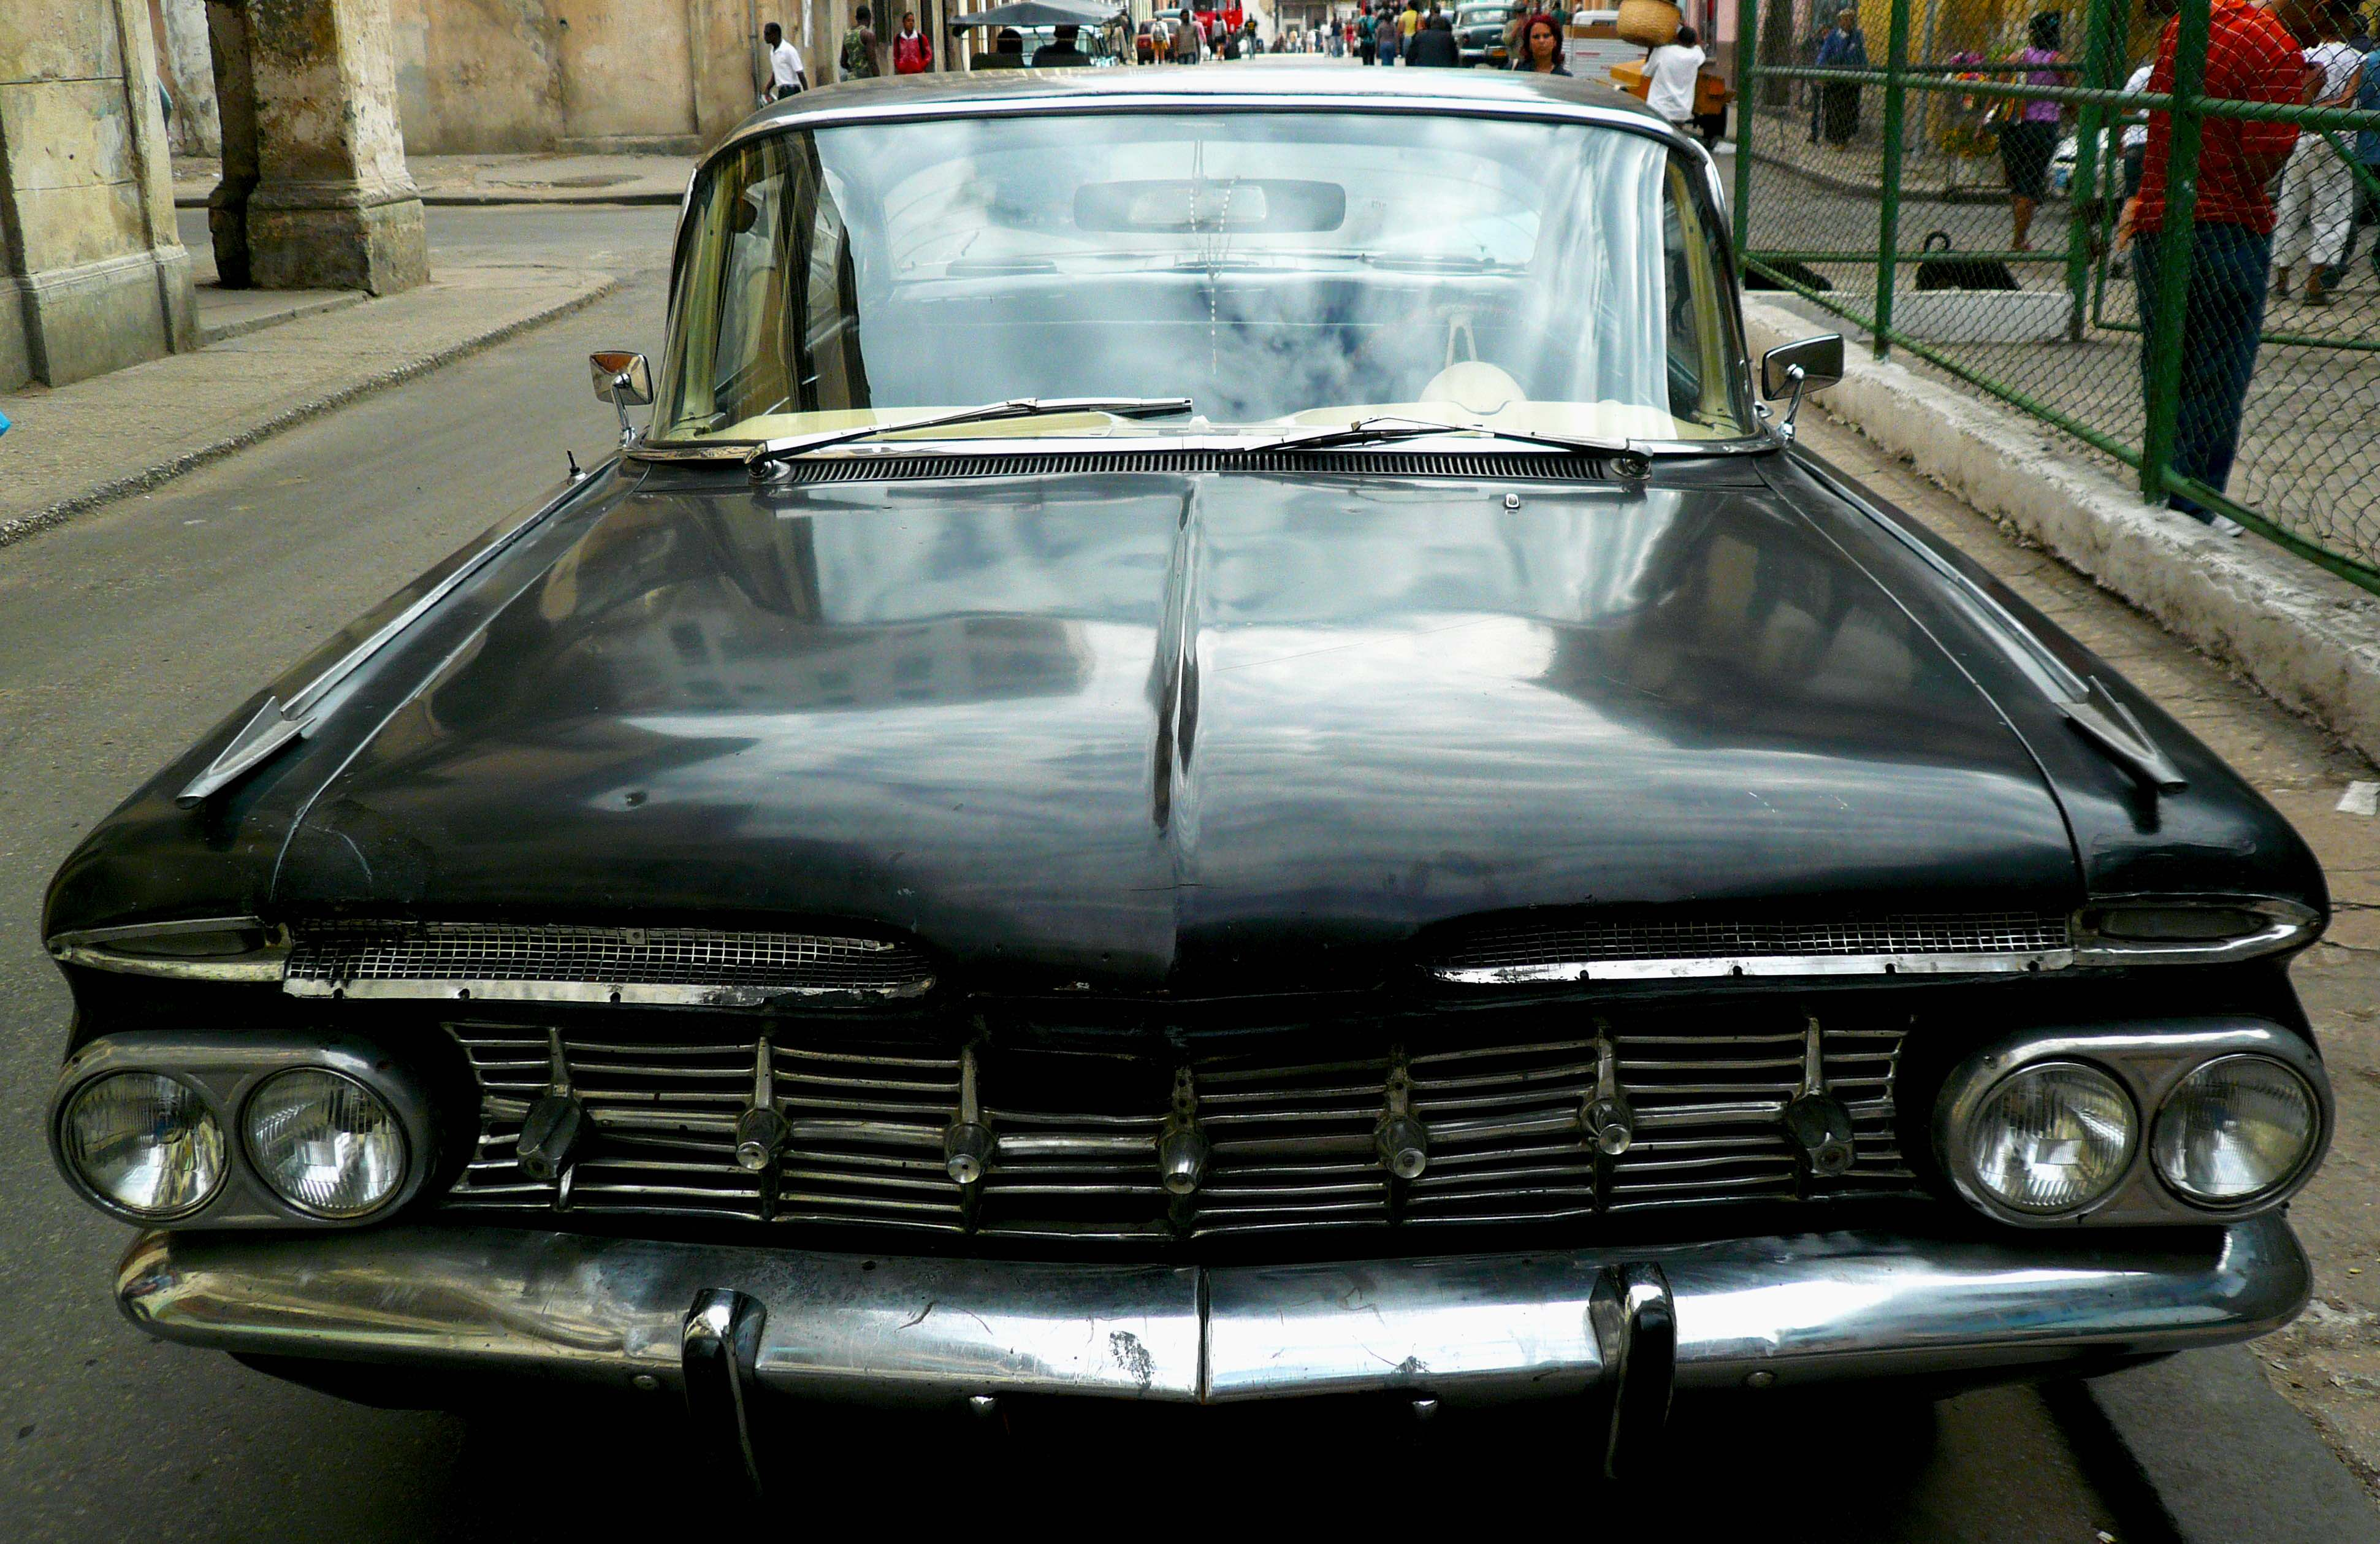 voiture-3-cuba-google-wordpress-daniel-fohr - copie